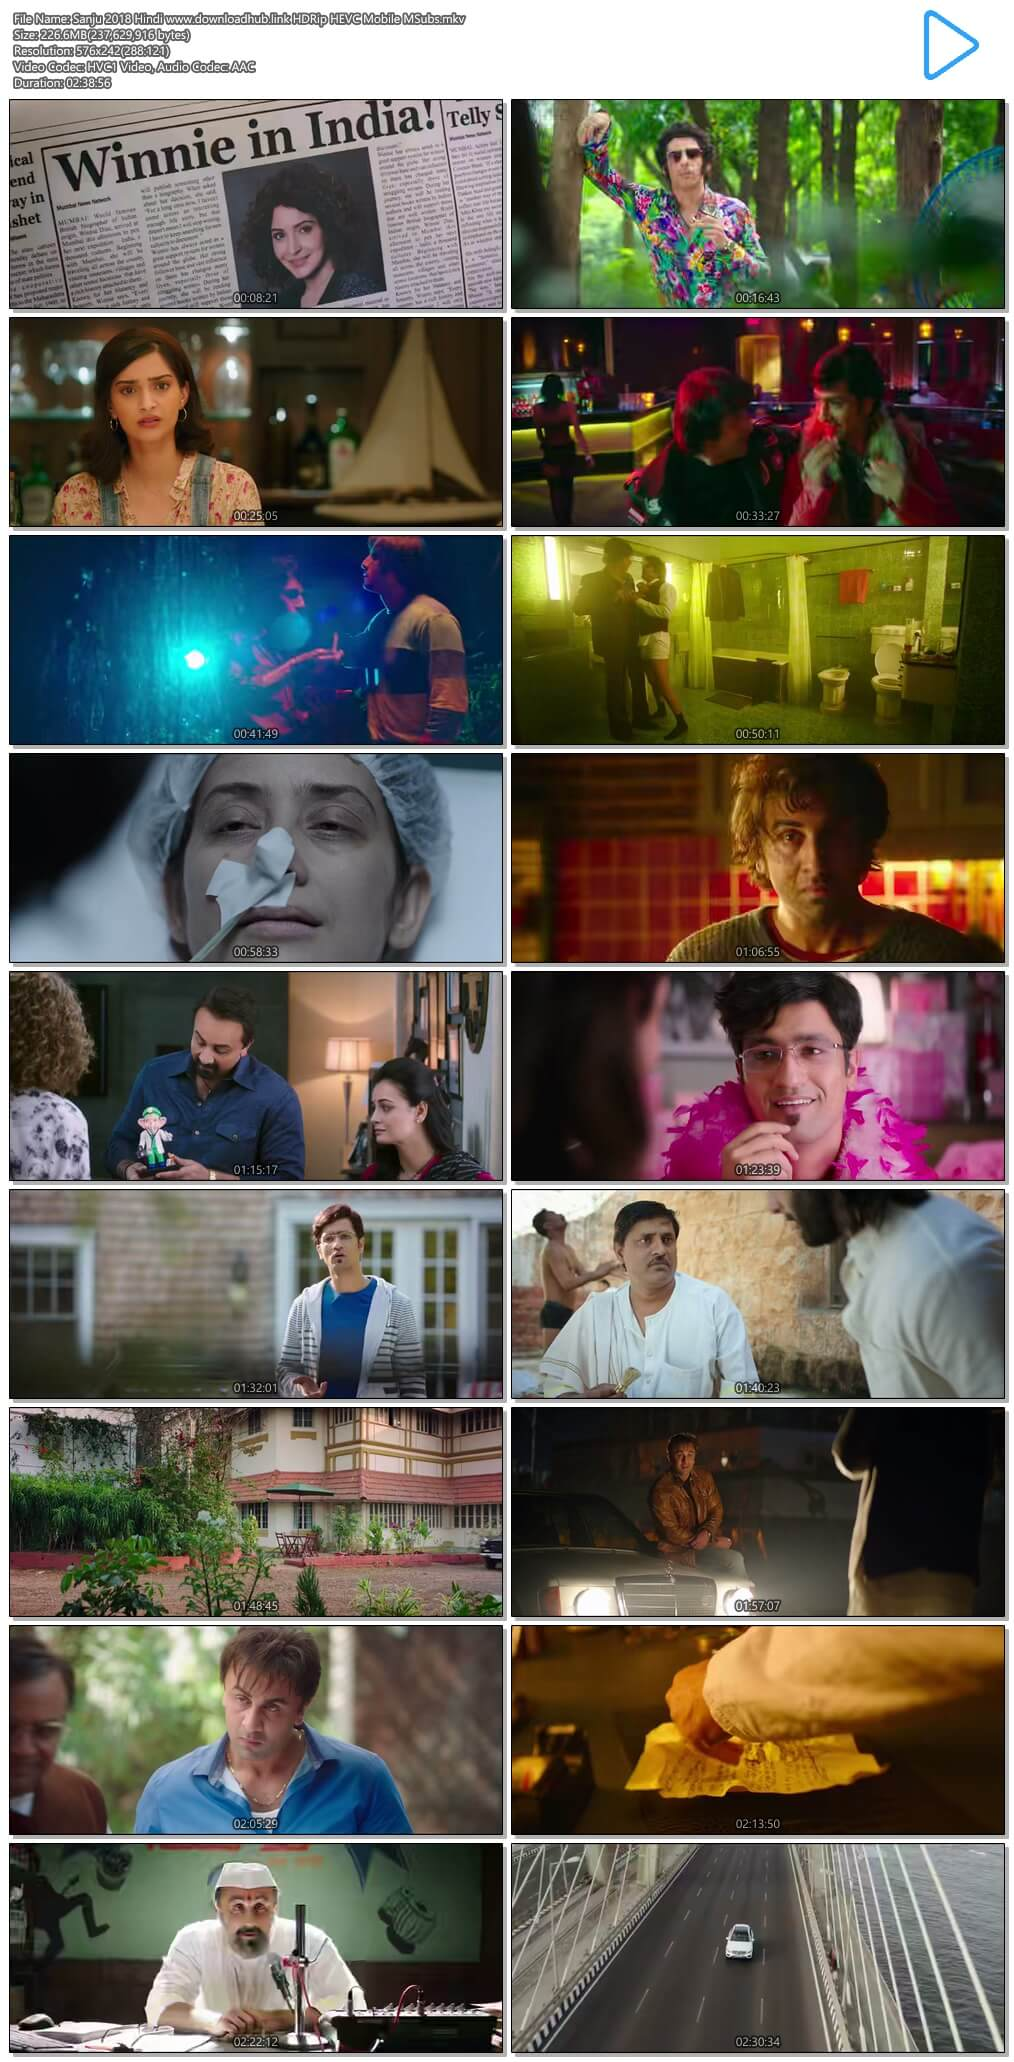 Sanju 2018 Hindi 200MB HDRip HEVC Mobile MSubs